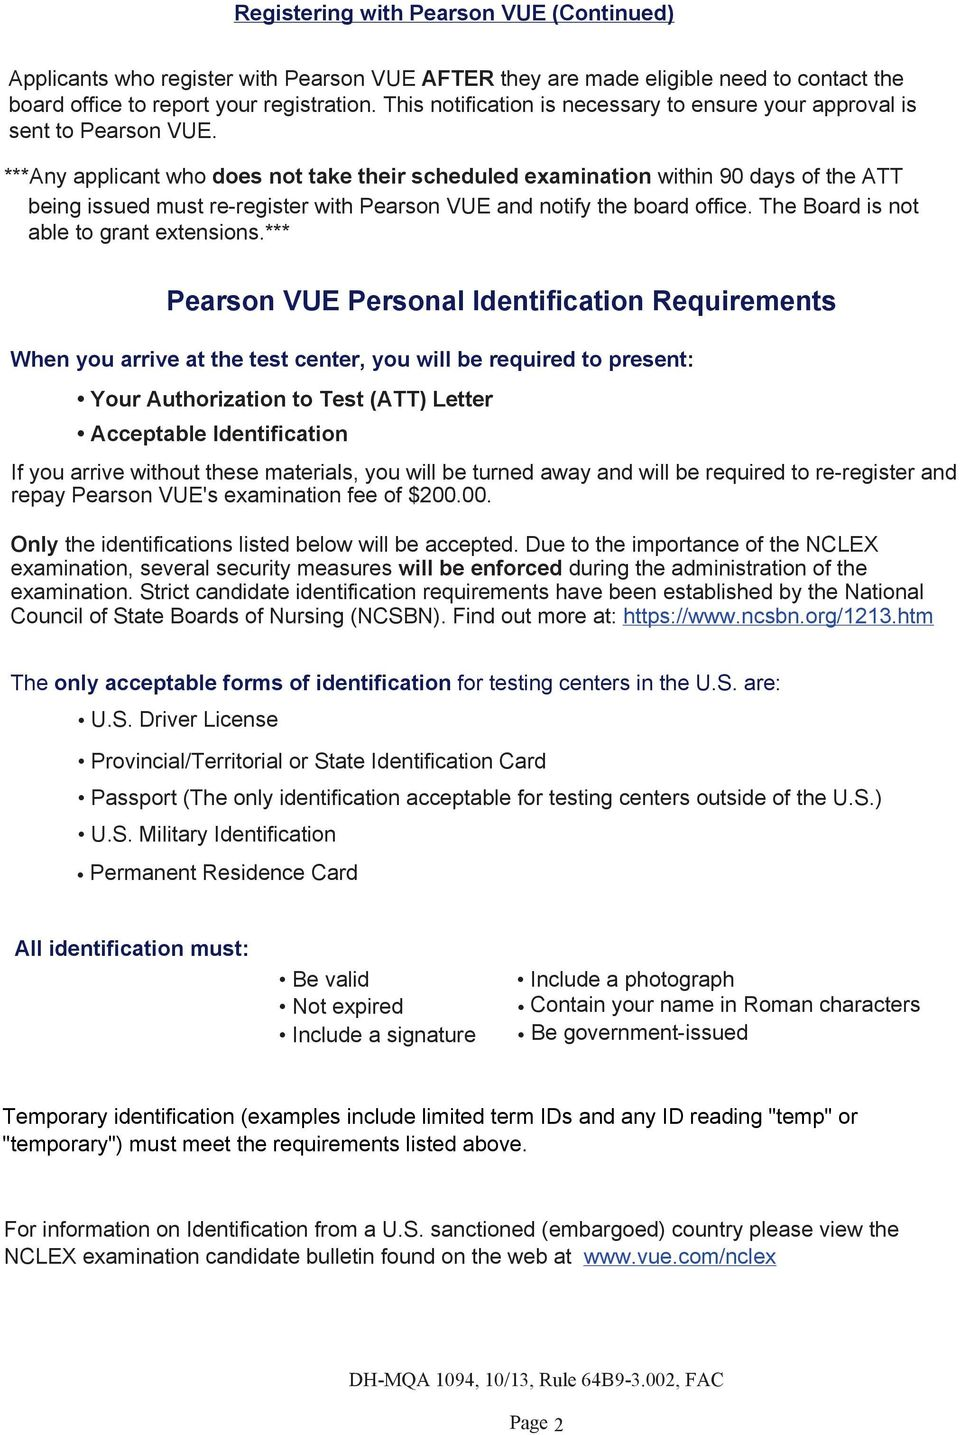 ***Any applicant who does not take their scheduled examination within 90 days of the ATT being issued must re-register with Pearson VUE and notify the board office.